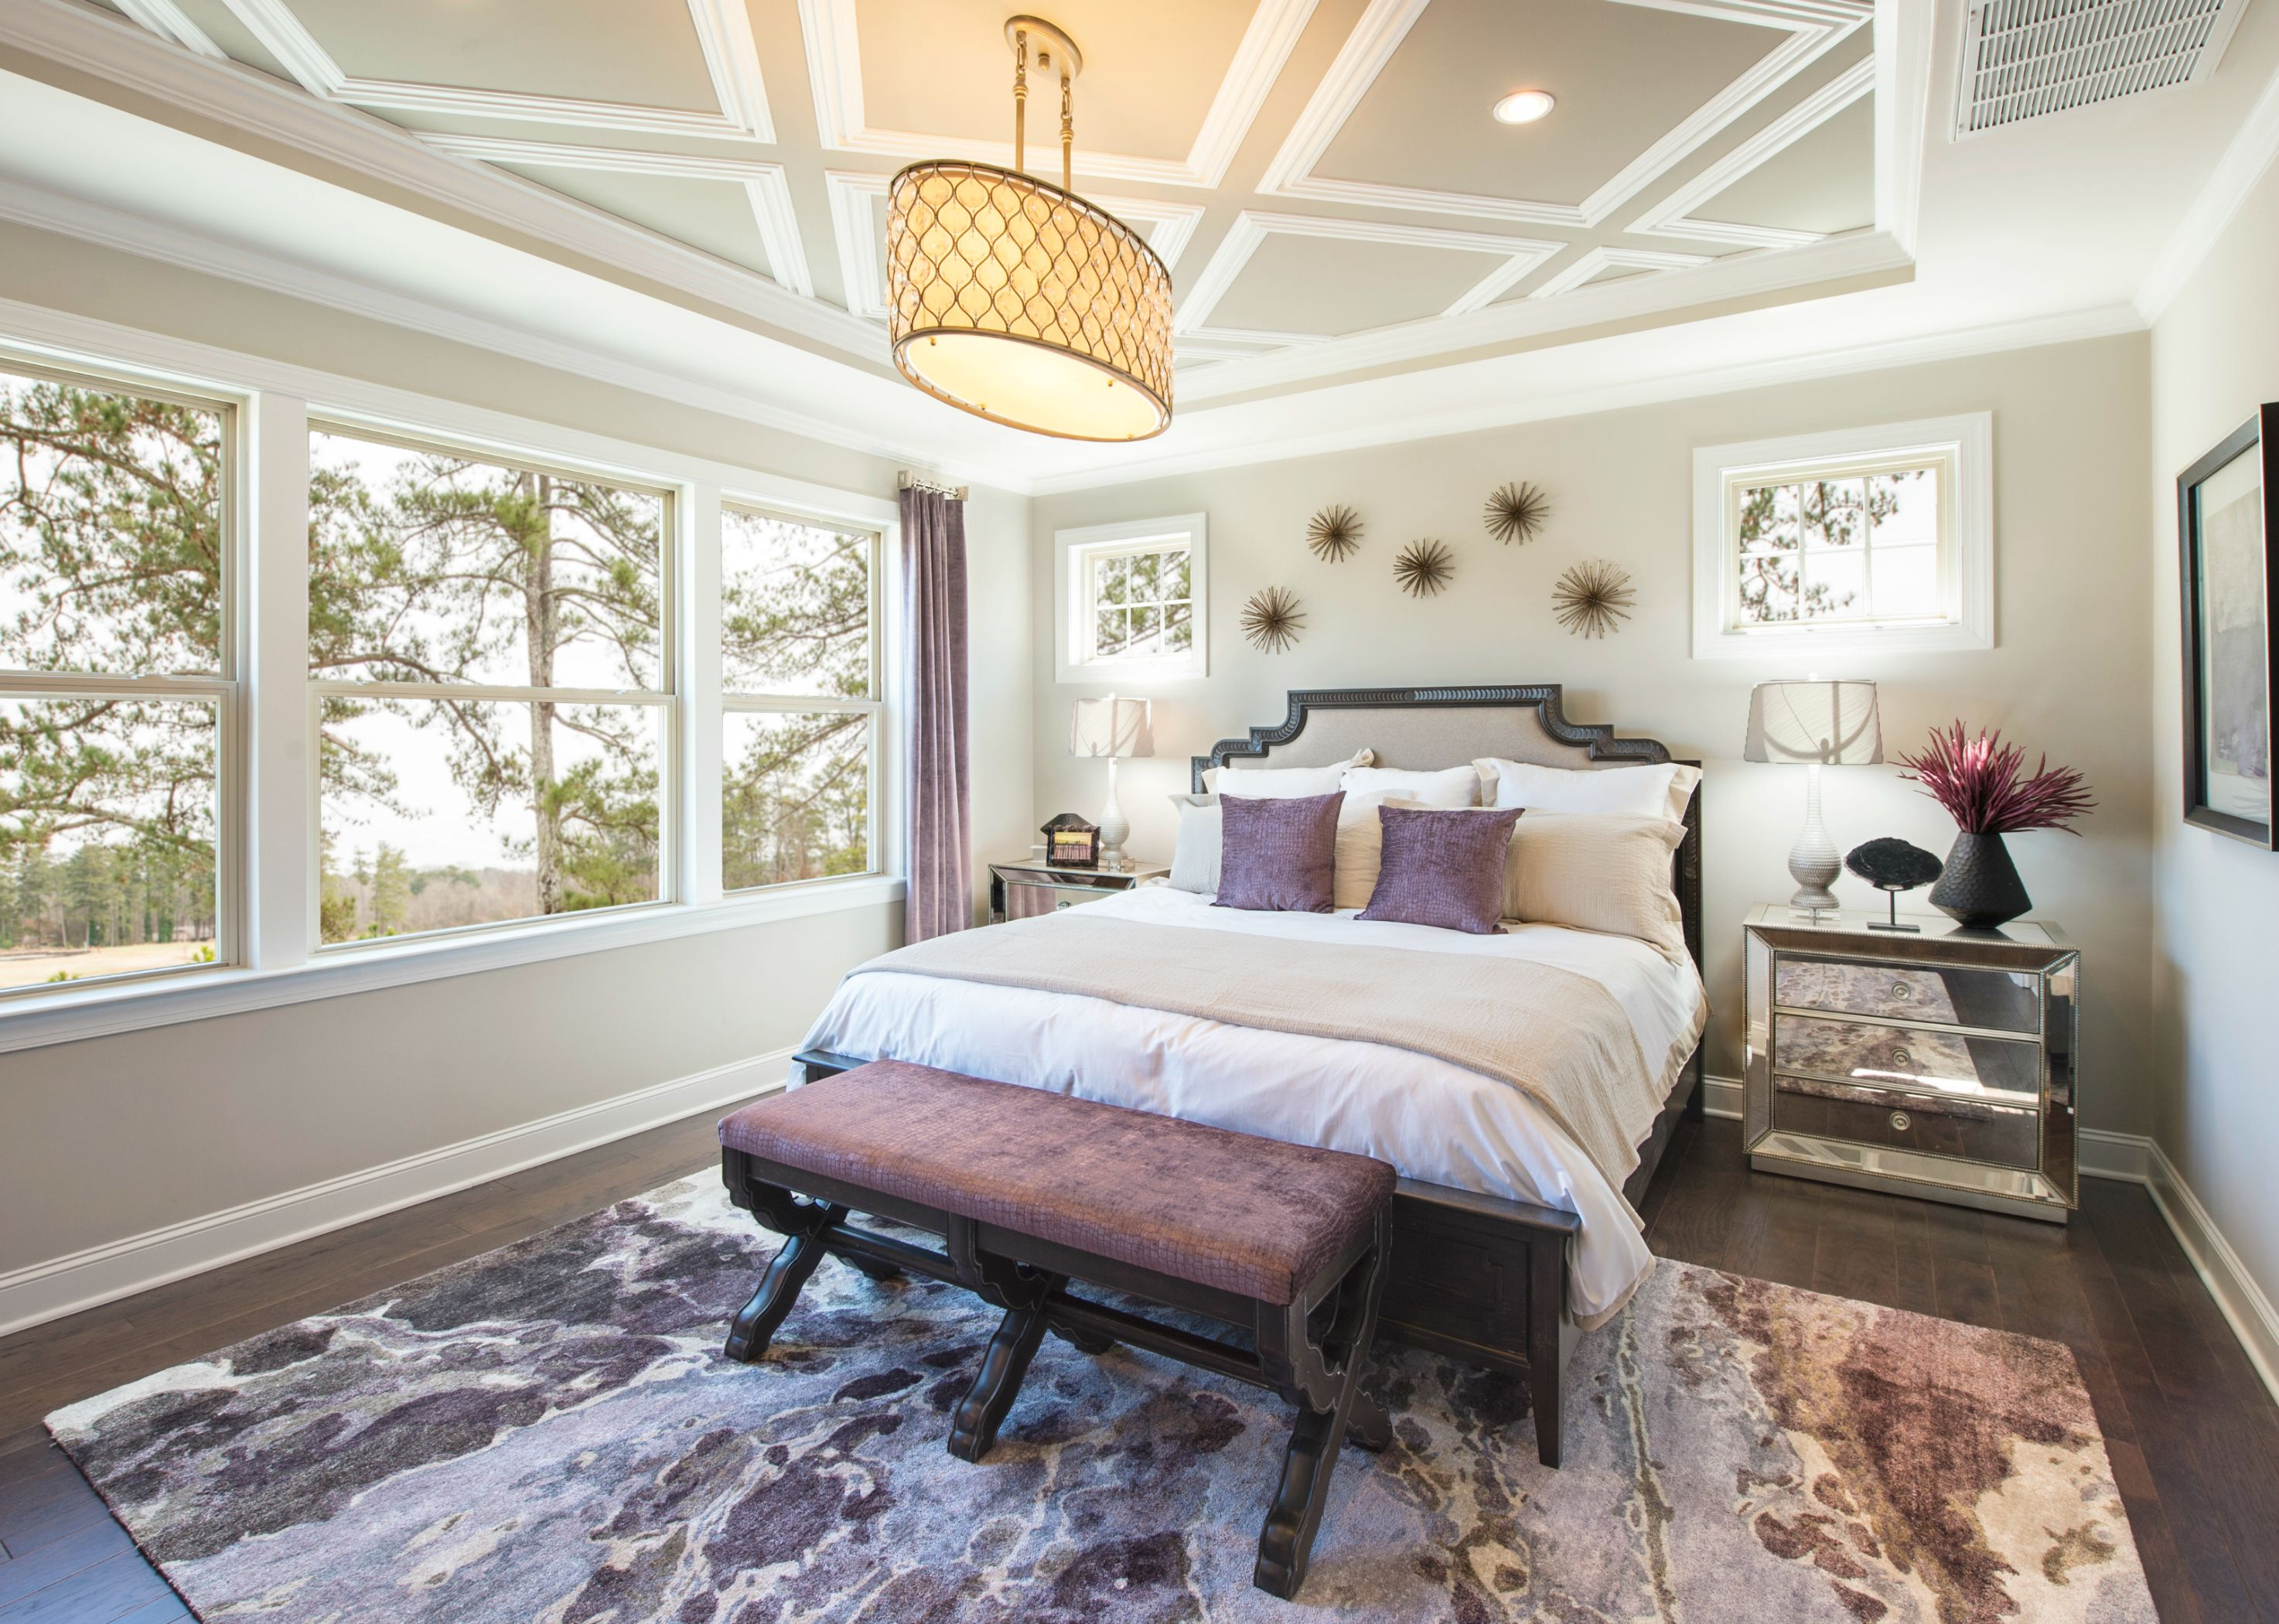 This contemporary bedroom has a subtle beige and purple color scheme